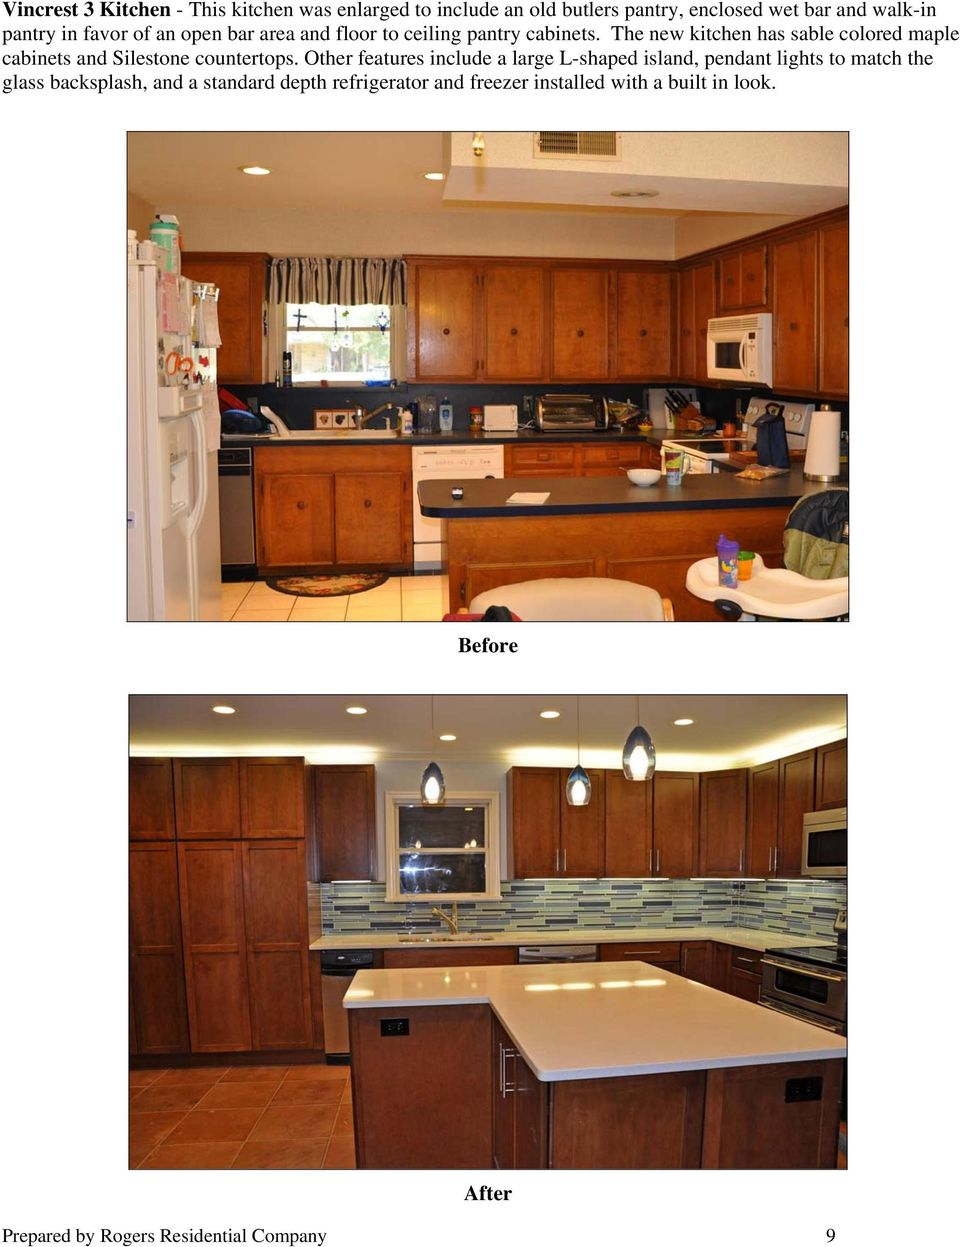 The new kitchen has sable colored maple cabinets and Silestone countertops.